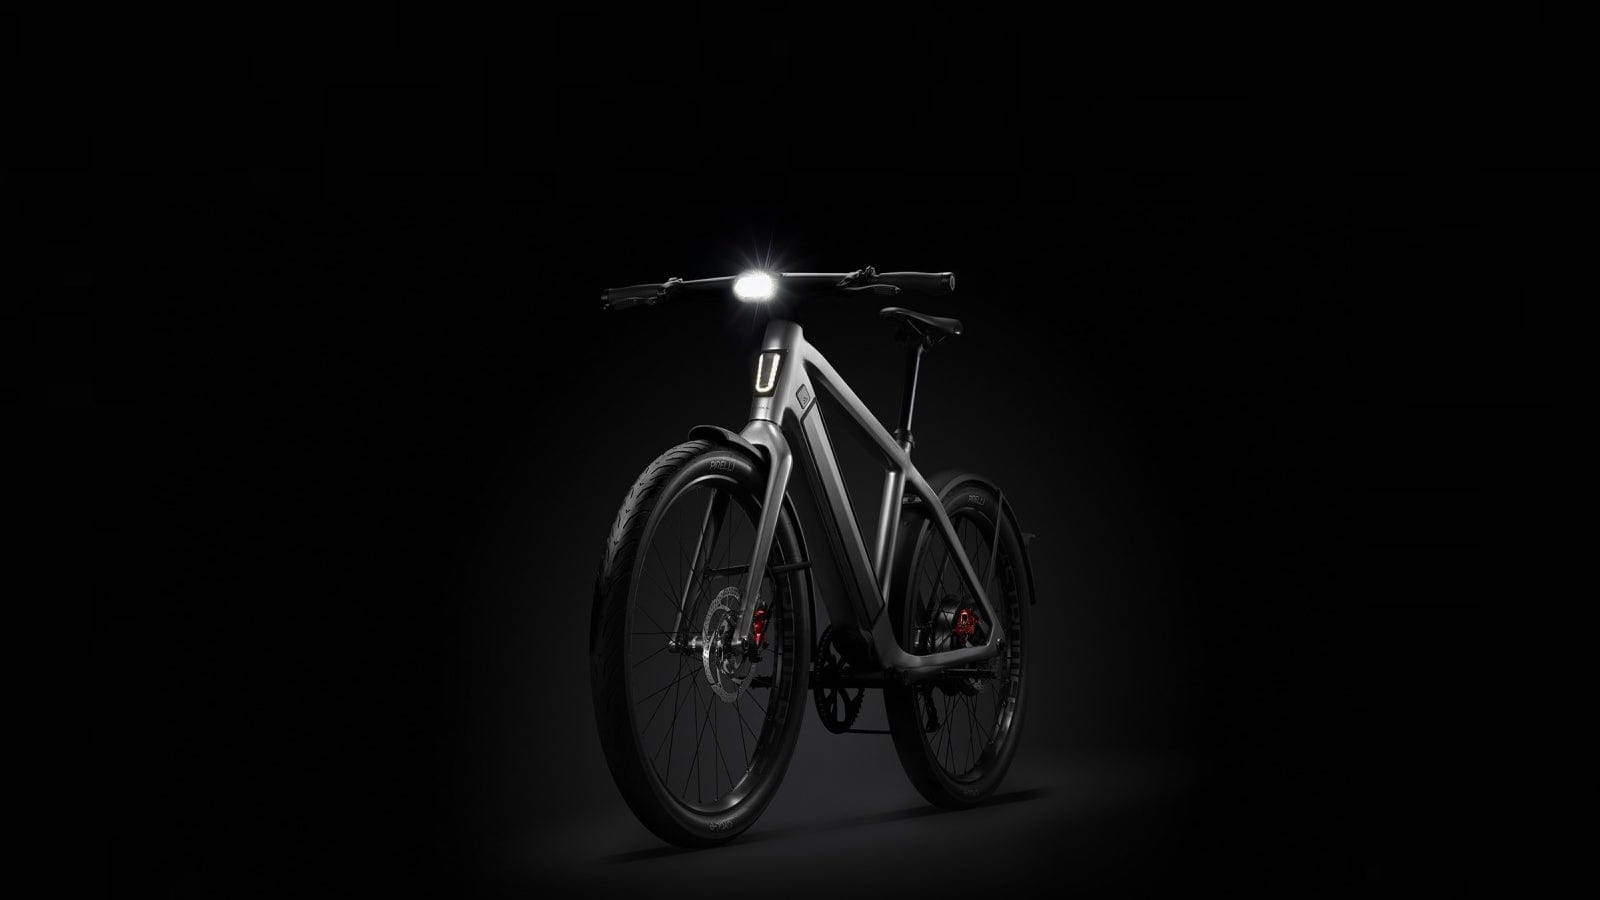 Stromer ST5 limited-edition eBike has a fully integrated antilocking braking system